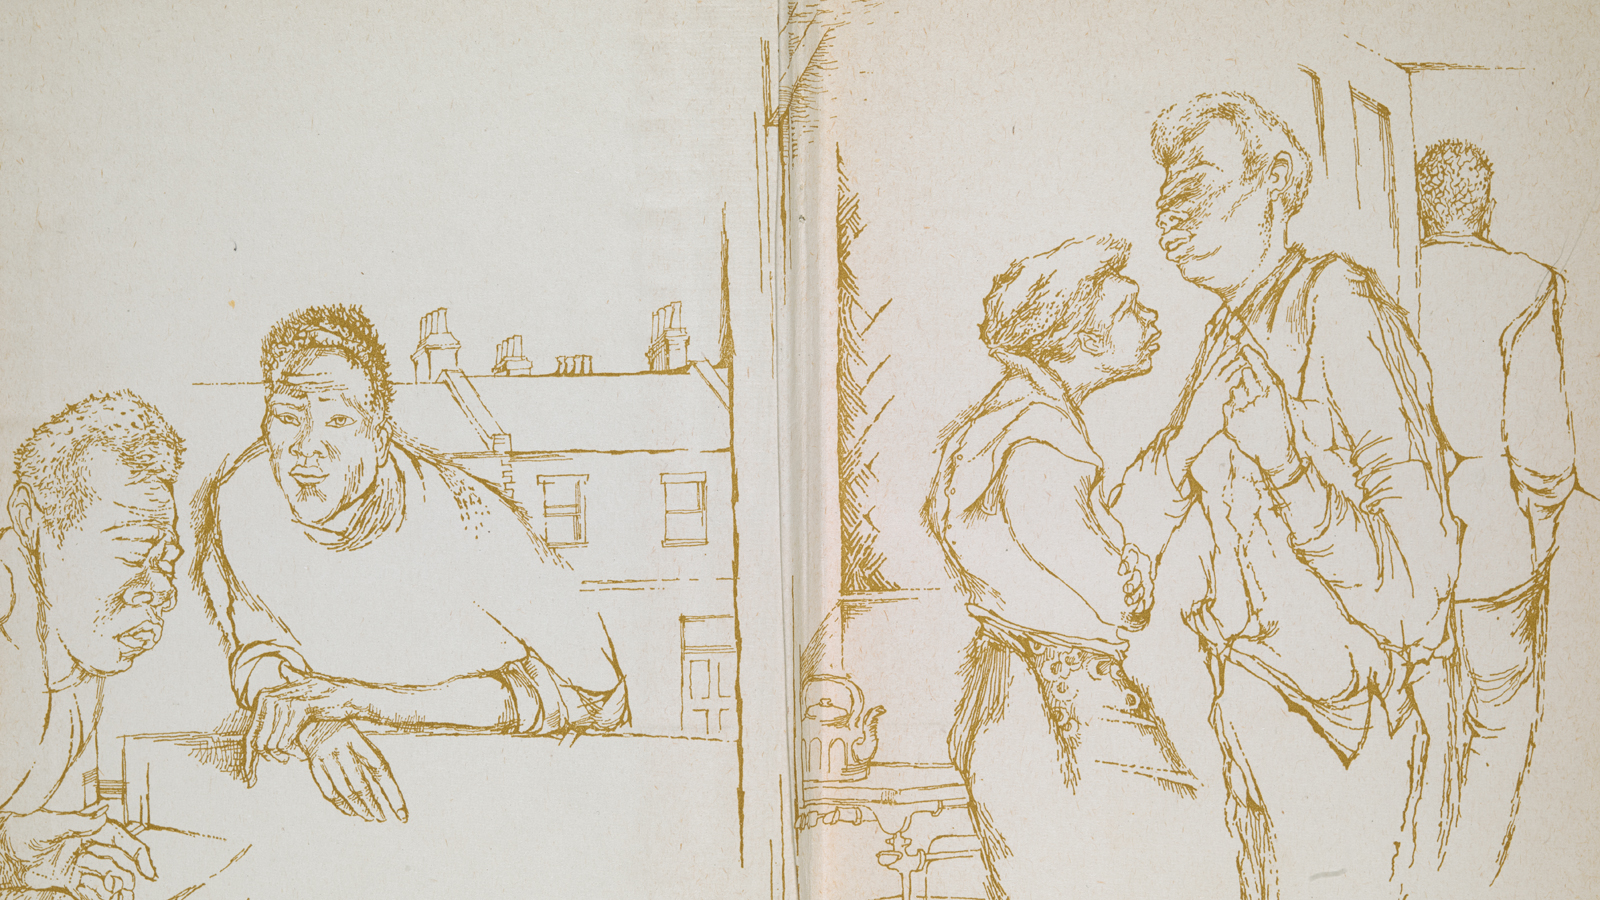 Crop of Denis Williams illustrations for The Emigrants by George Lamming. One scene shows two seated Caribbean men against a backdrop of terrace houses, one scene shows three Caribbean men inside a room with a stove